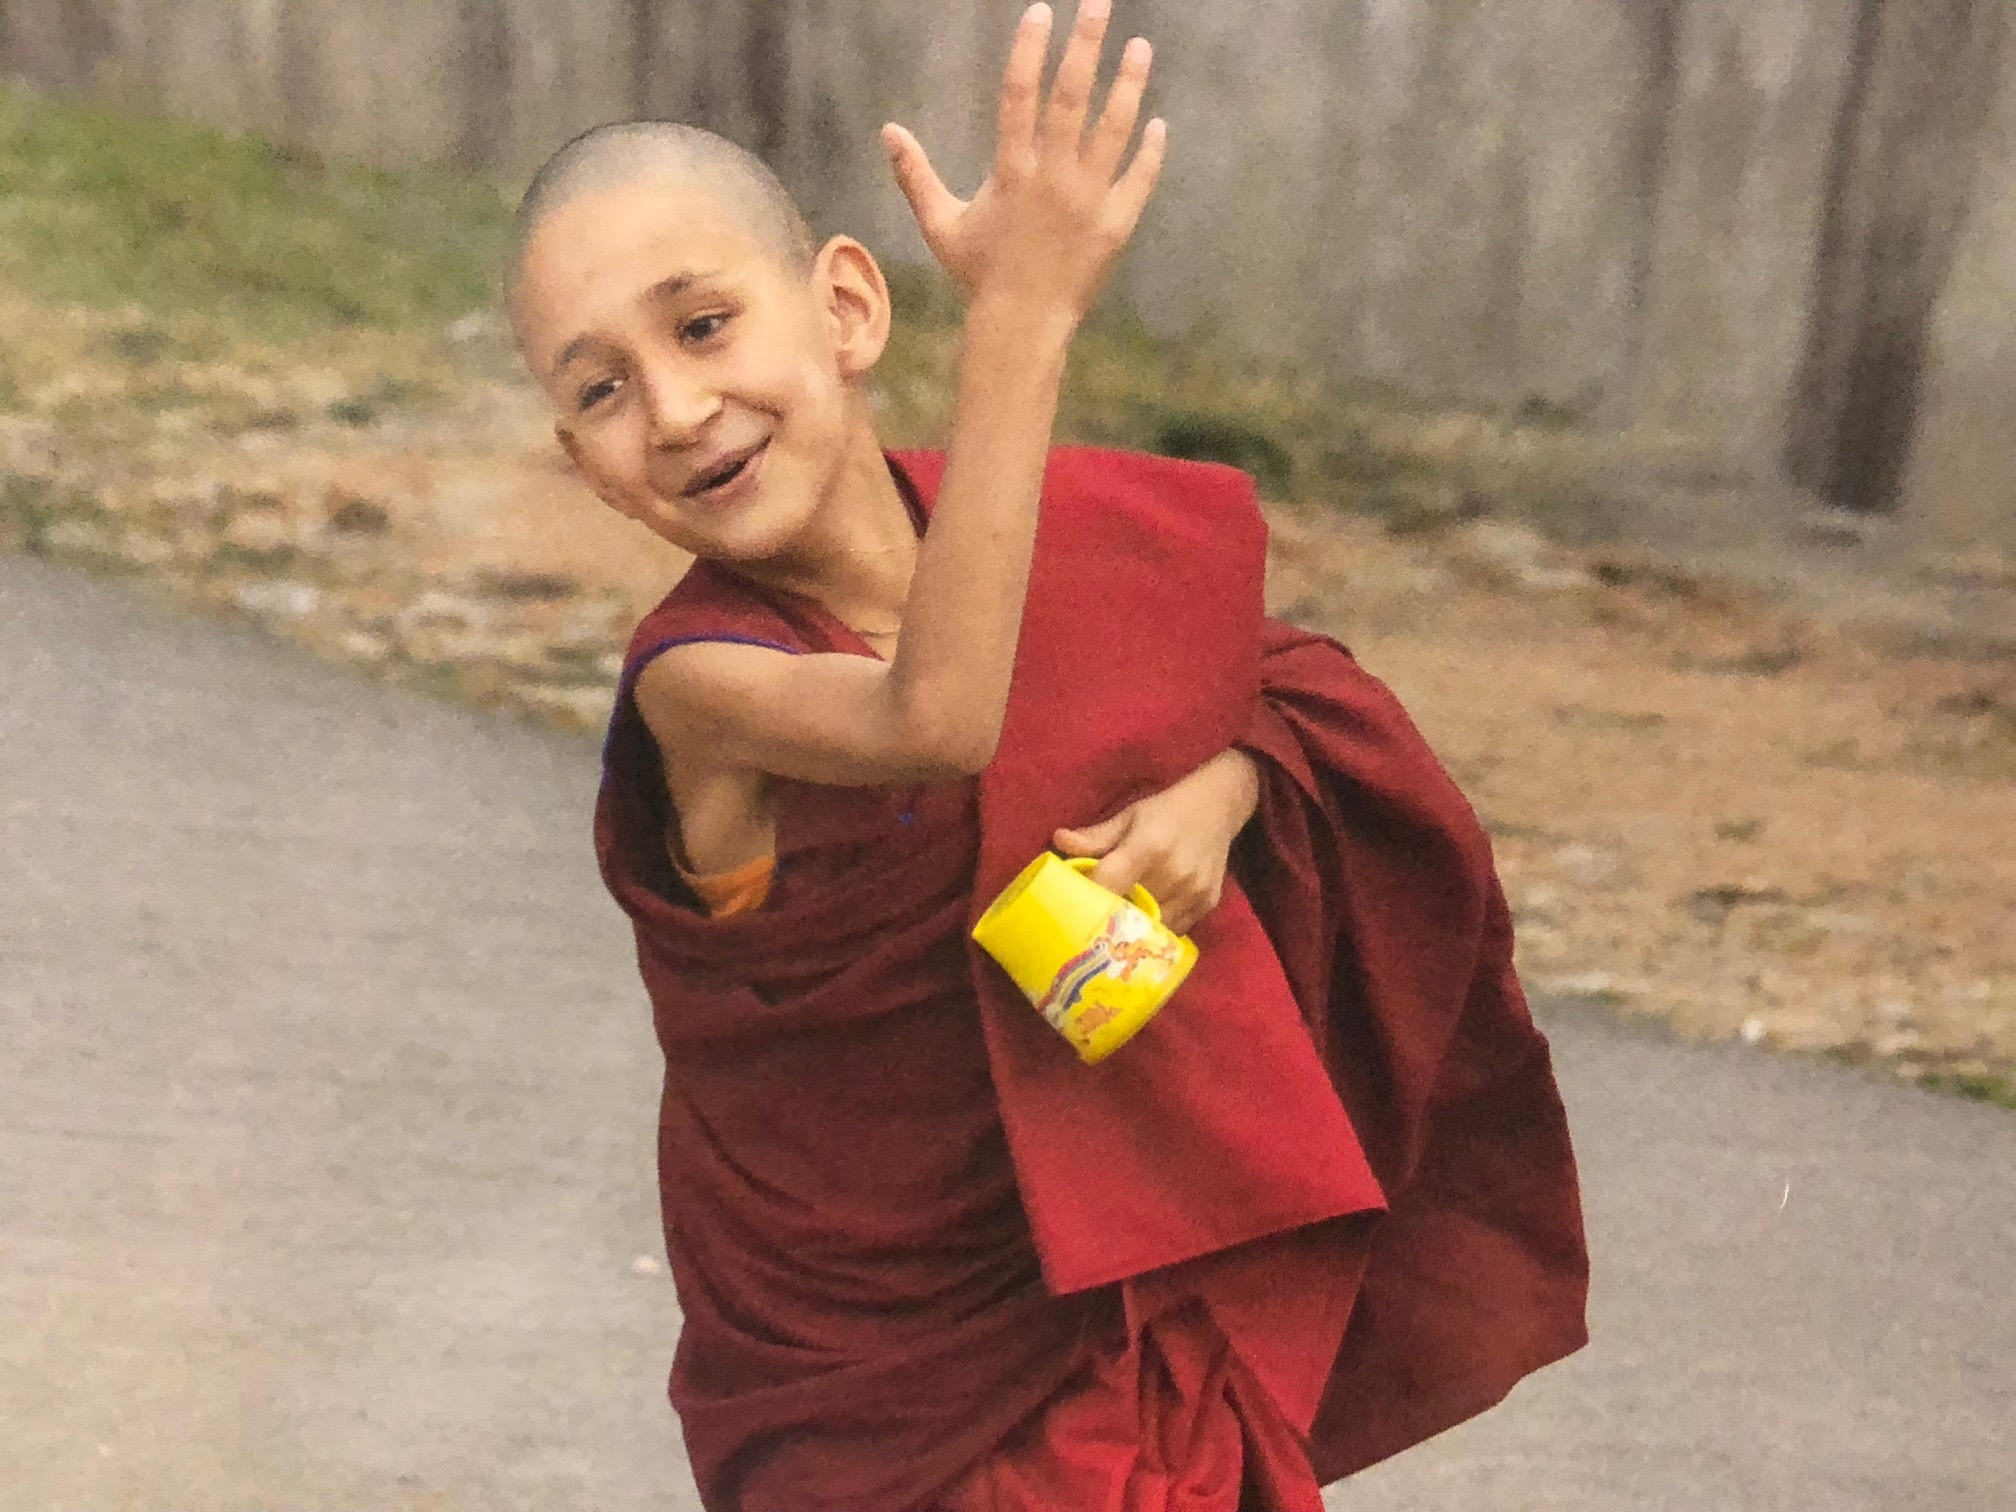 181_Legault-photo of young monk with yellow cup.jpg